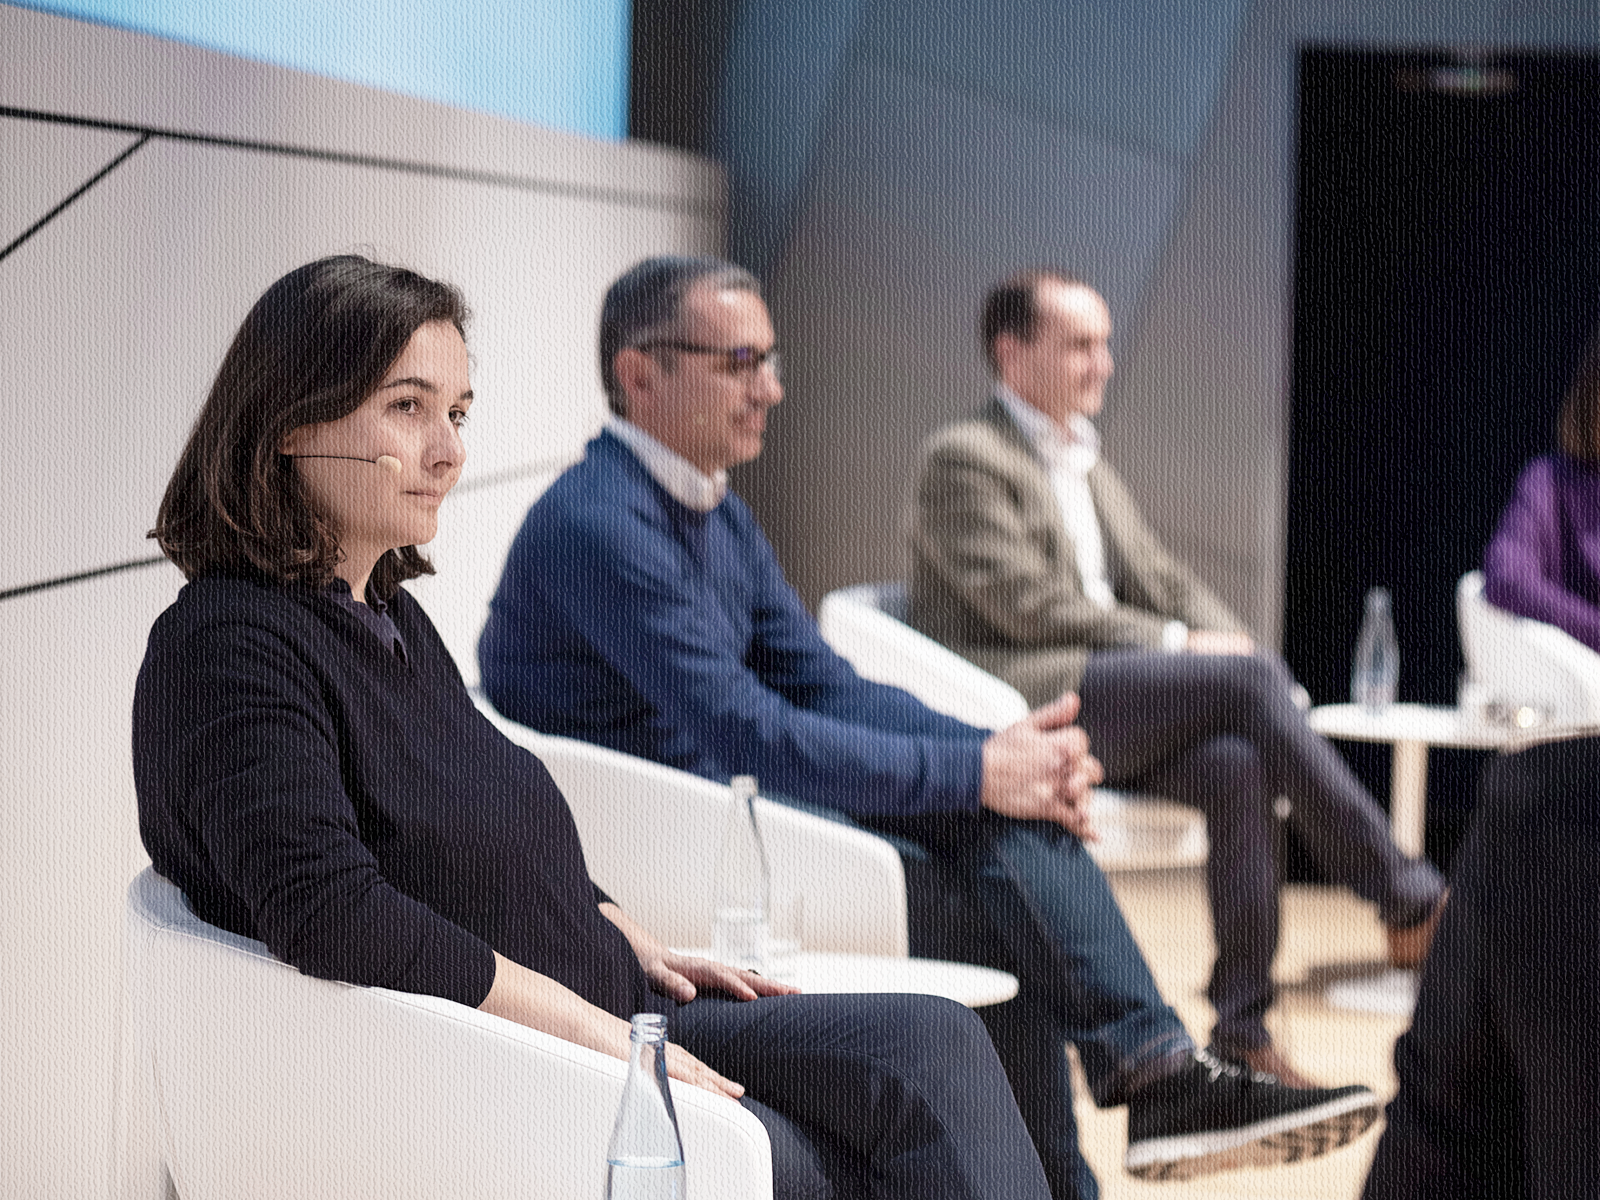 /bfs21/slideshows/8.png